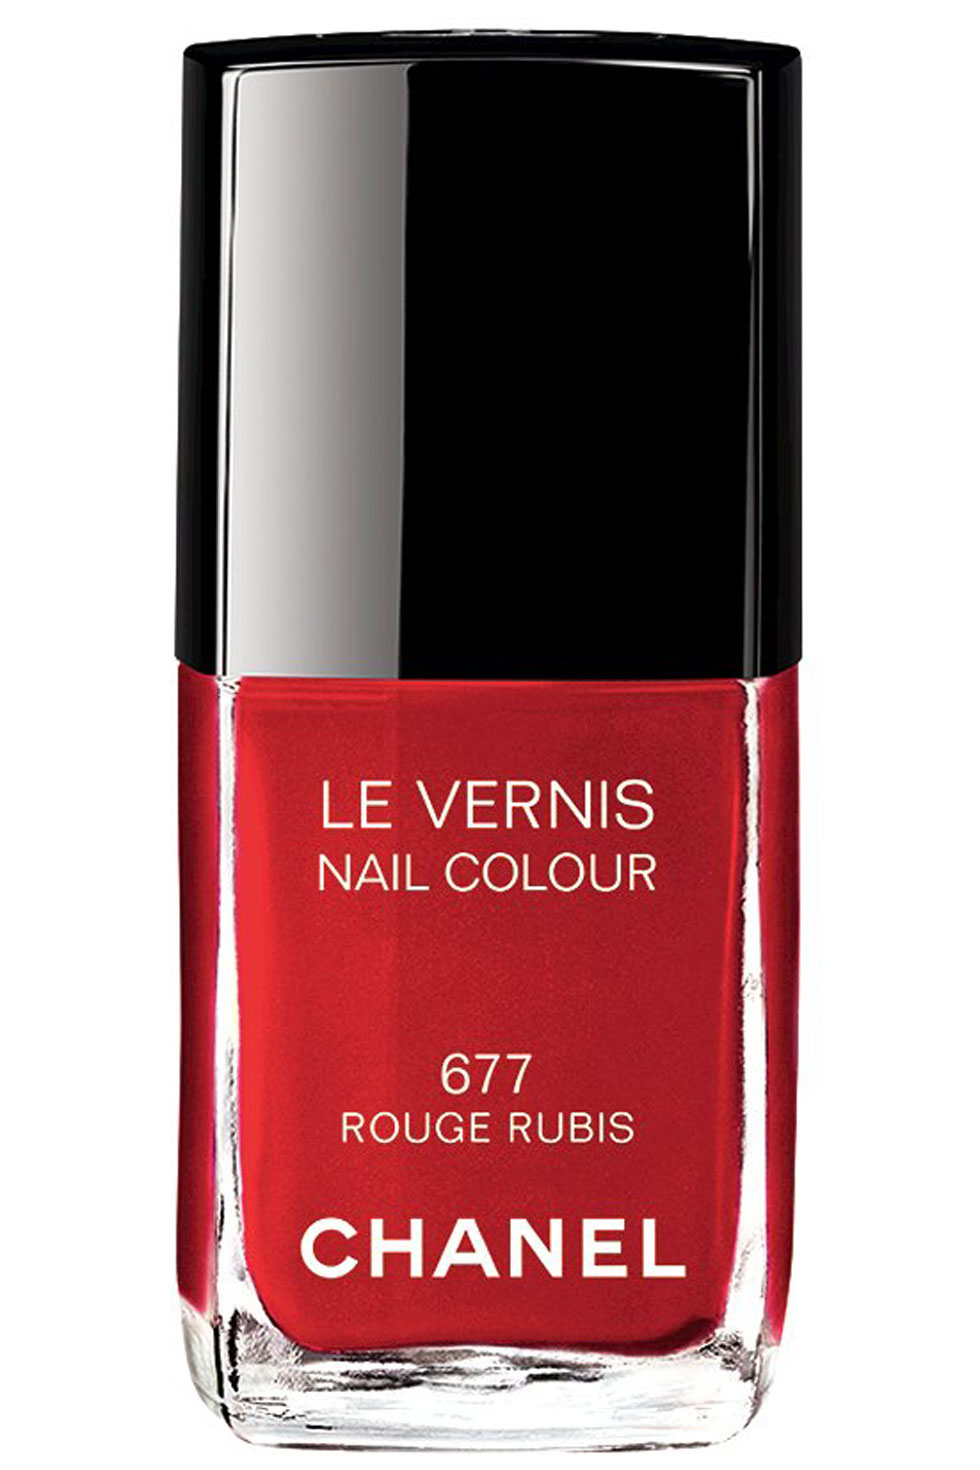 9 of the Newest Red Nail Polishes for Valentine's Day ...